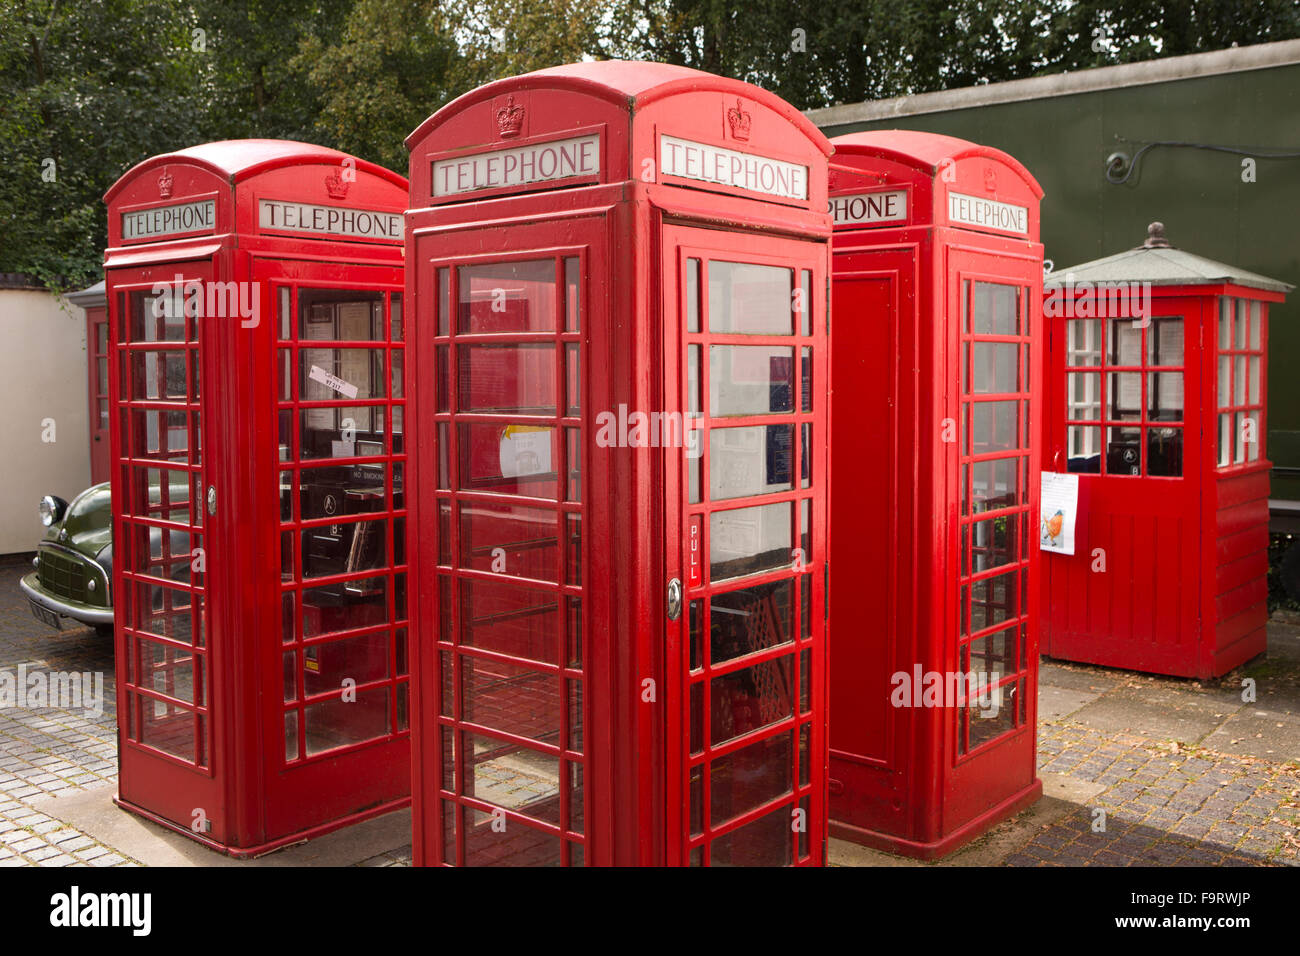 UK, England, Worcestershire, Bromsgrove, Avoncroft Museum, National Telephone Kiosk Collection, K6 boxes, Brintons - Stock Image